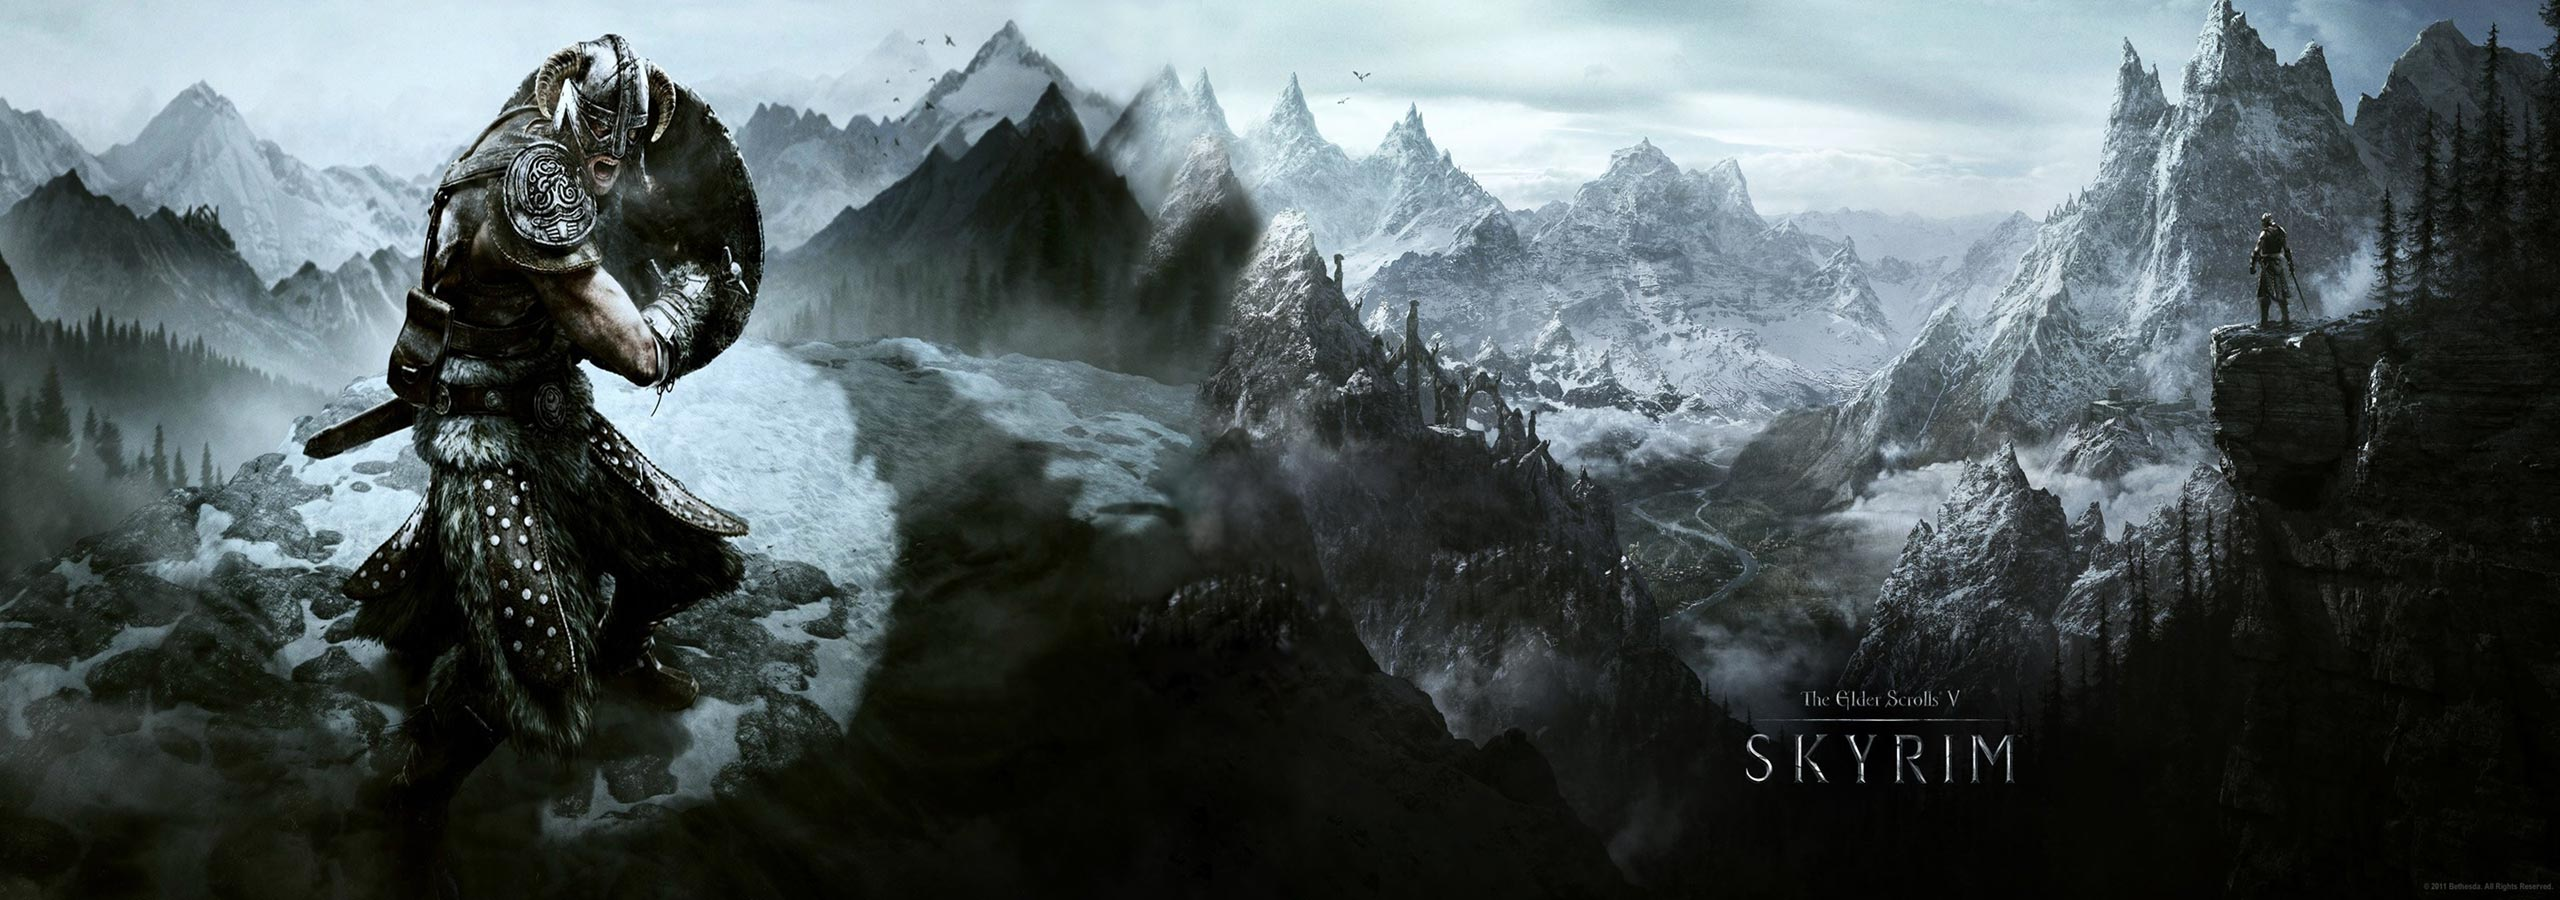 Game Of Thrones Quotes Wallpaper 1920x1080 Amazing Dual Screen Monitor Hd Wallpaper 2560x900